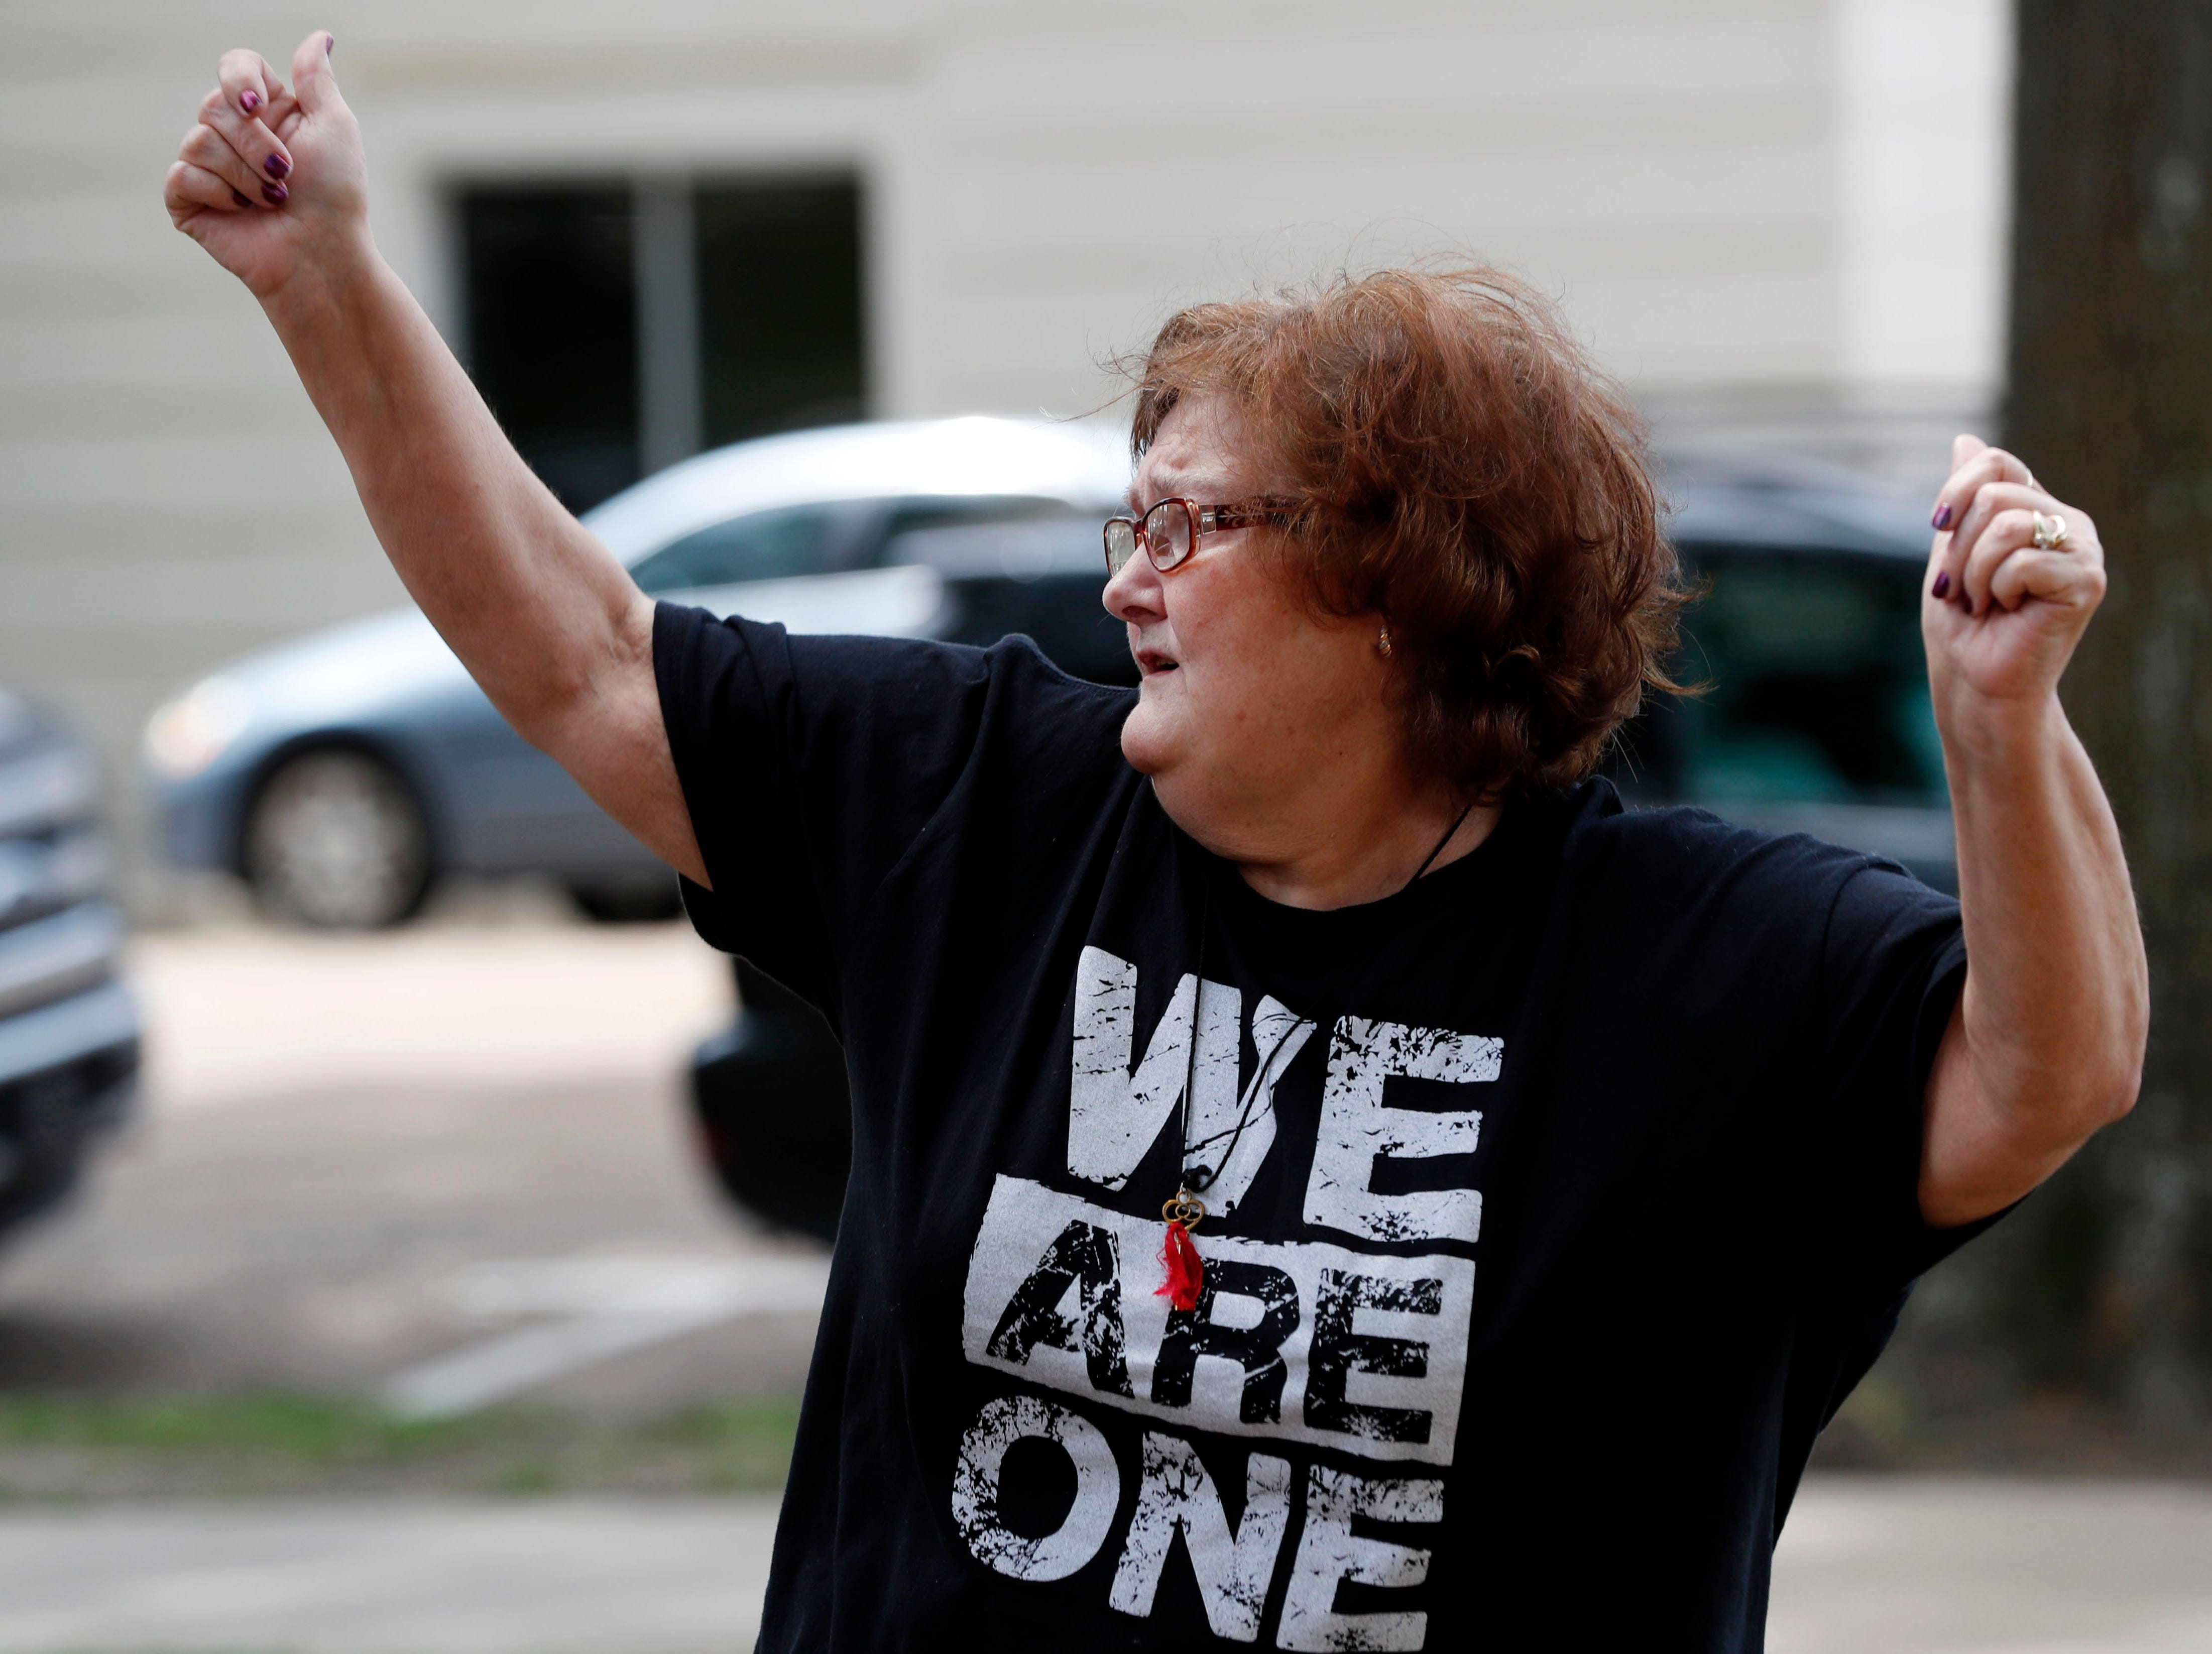 Susan Nall of Canton, Miss., waves her arms during a dance of joy on the grounds of the state Capitol in Jackson, Miss., Thursday, May 2, 2019, during the National Day of Prayer. The annual day of observance is held on the first Thursday of May, designated by the United States Congress, calling on all people of faith to pray for the nation and its leaders. (AP Photo/Rogelio V. Solis)